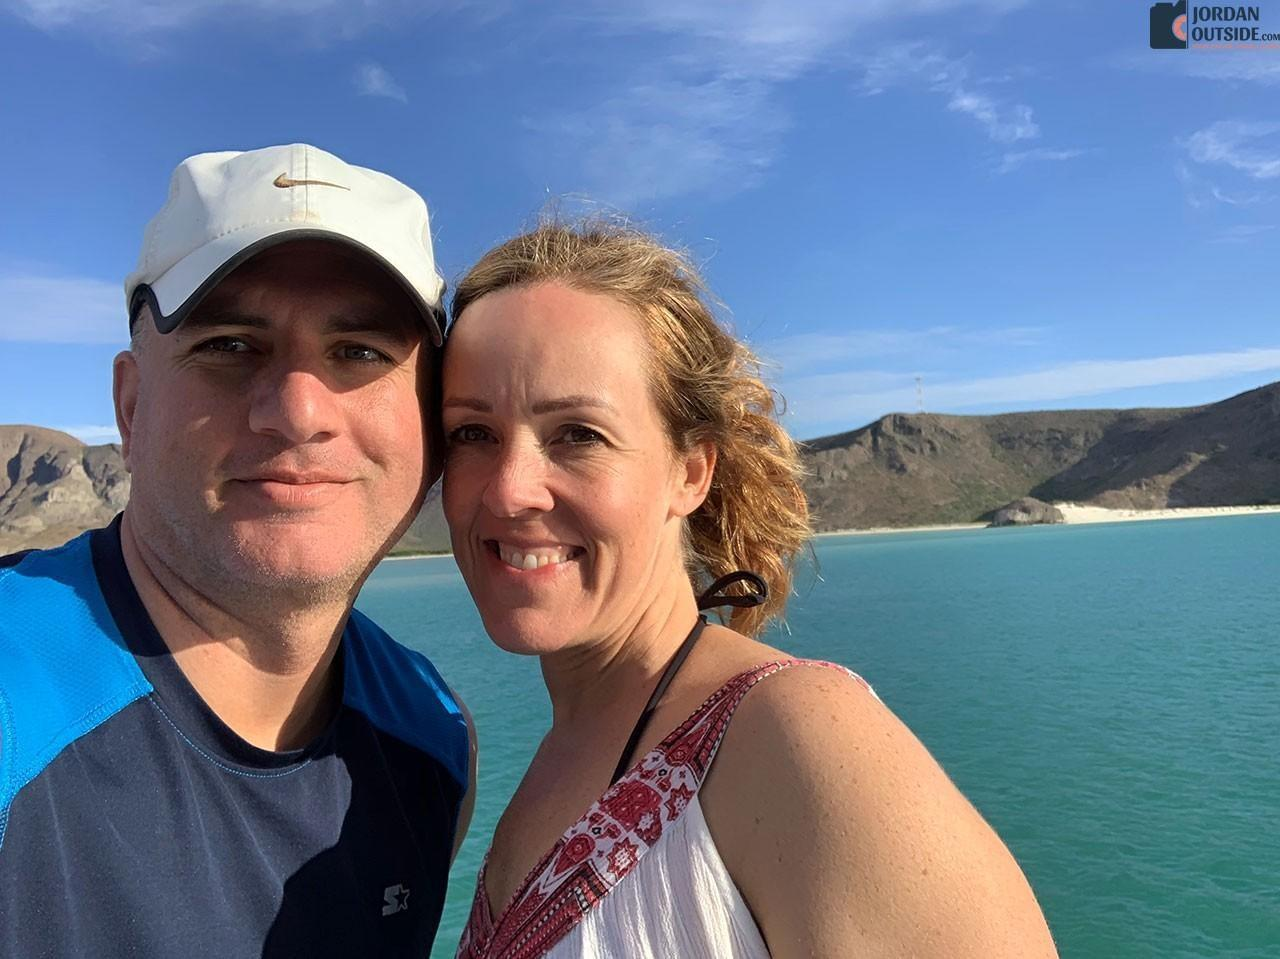 Jordan and Julie on the Sea of Cortez